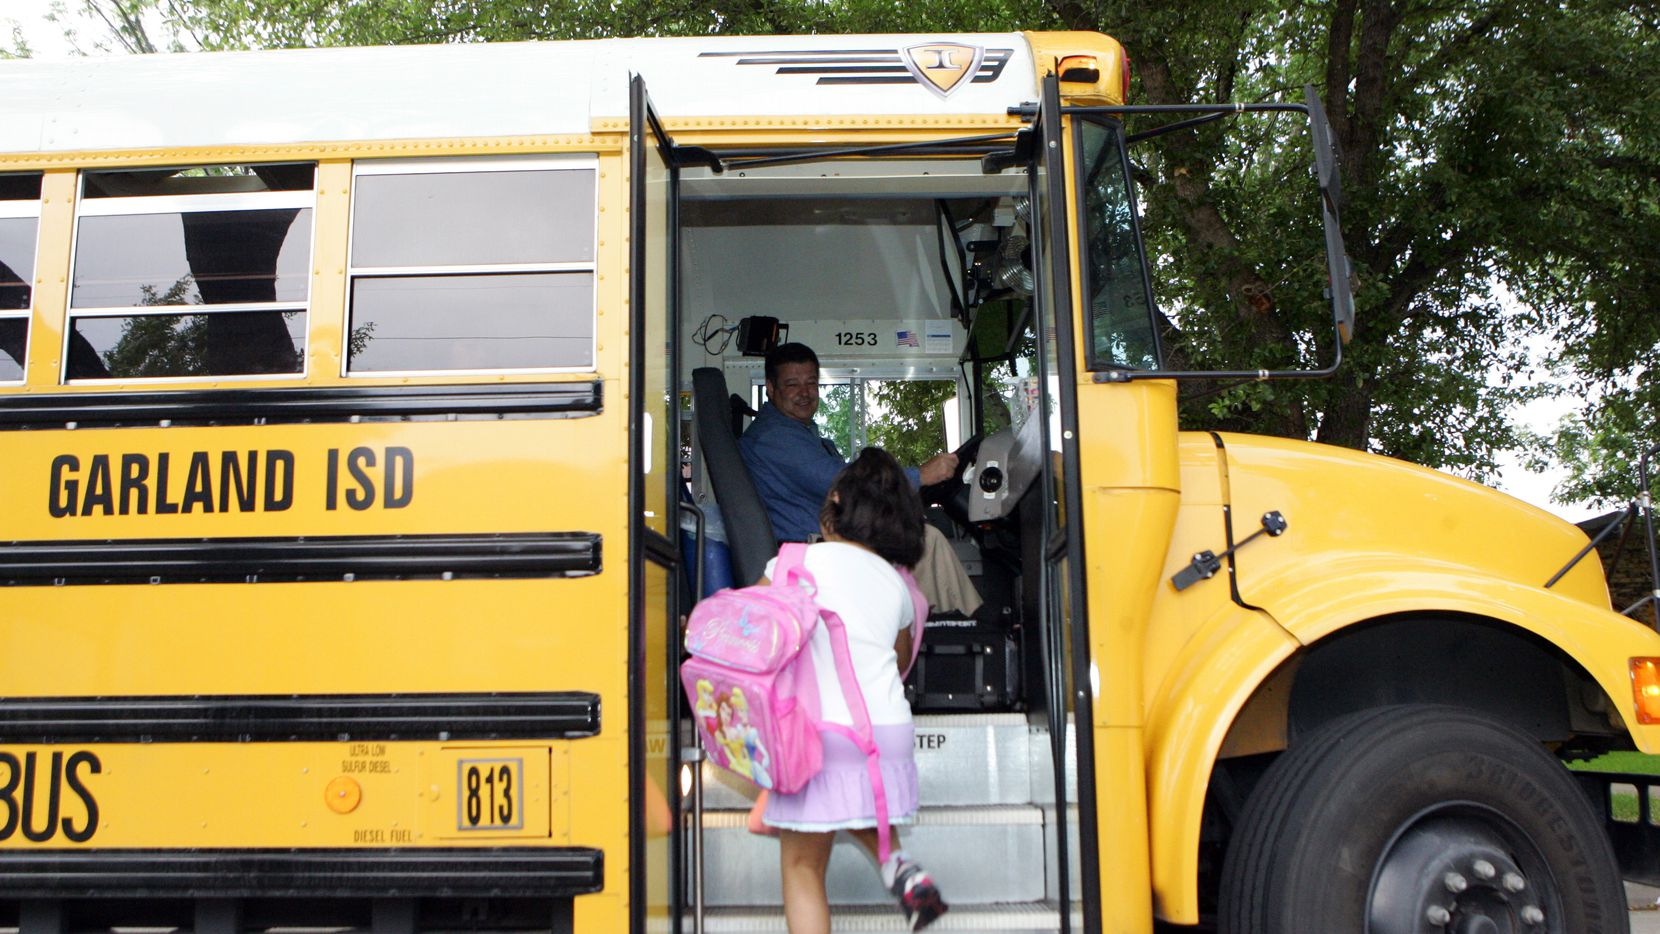 Garland Independent School District bus driver Parker Abell (left) greets Rosa Medrano as she boards the bus for Hillside Elementary and Watson Technology Center in Garland, Texas, in this file photo from 2006.